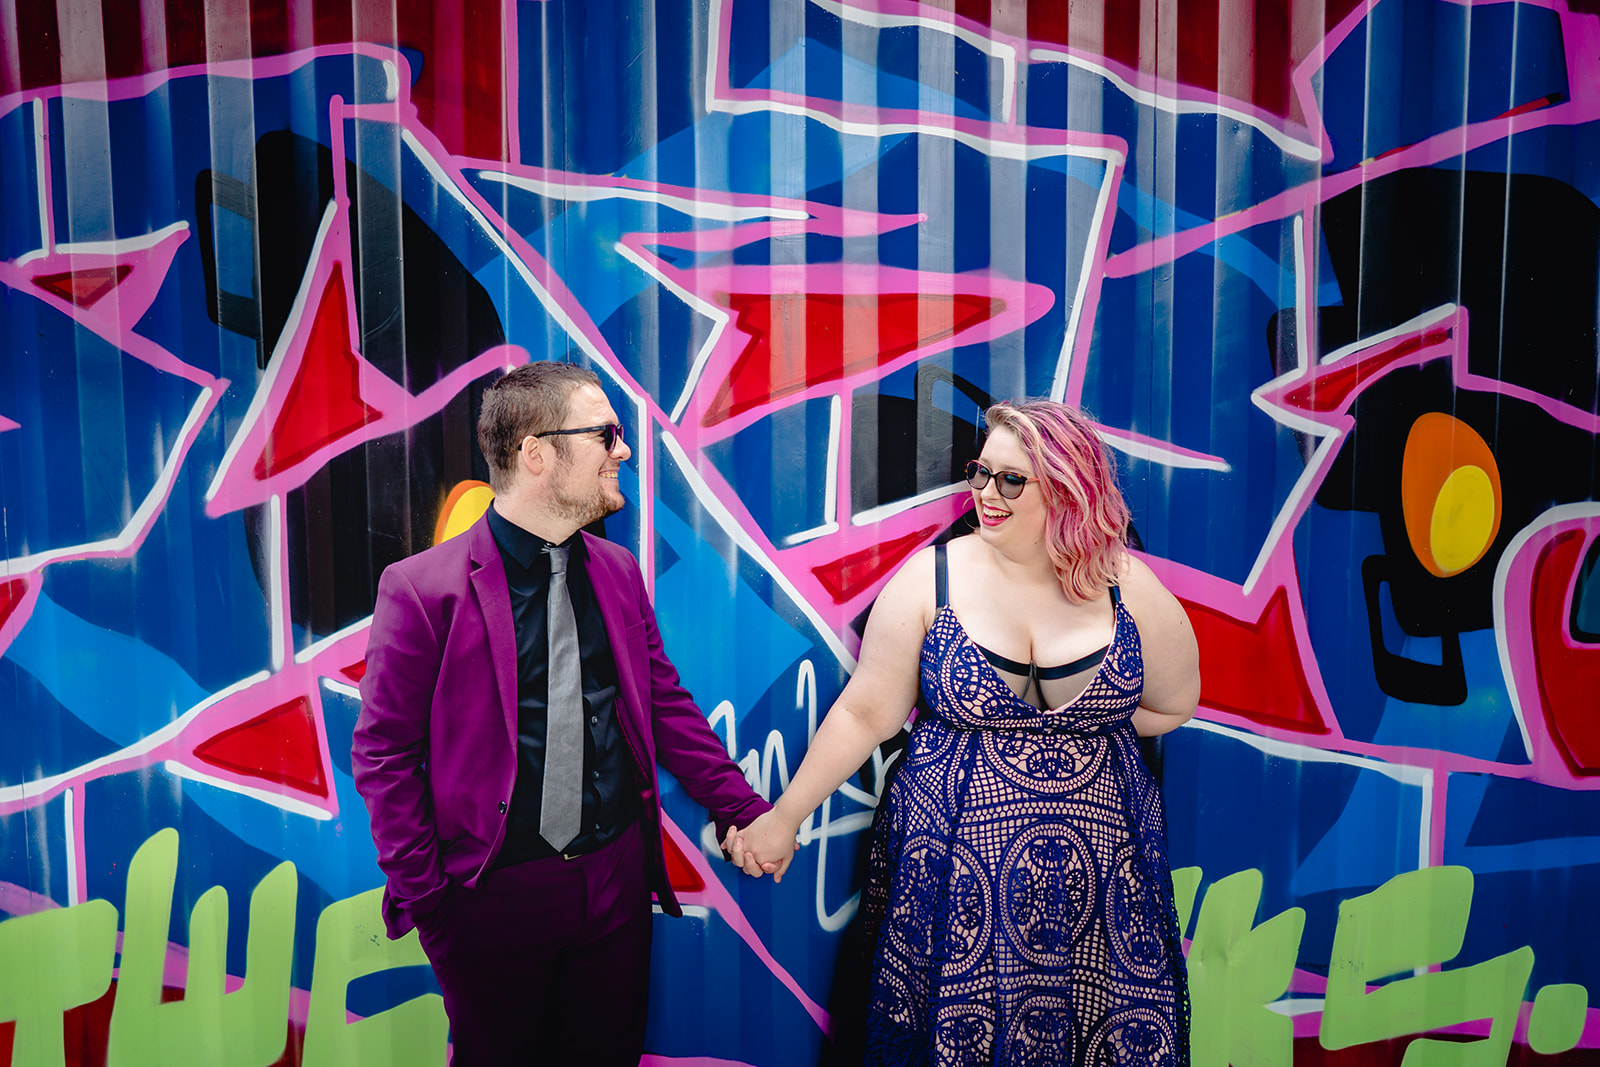 engagement shoots - birmingham engagement shoot - colourful wedding photoshoot - quirky wedding photos - fun wedding photography - alternative wedding - graffiti wedding photoshoot